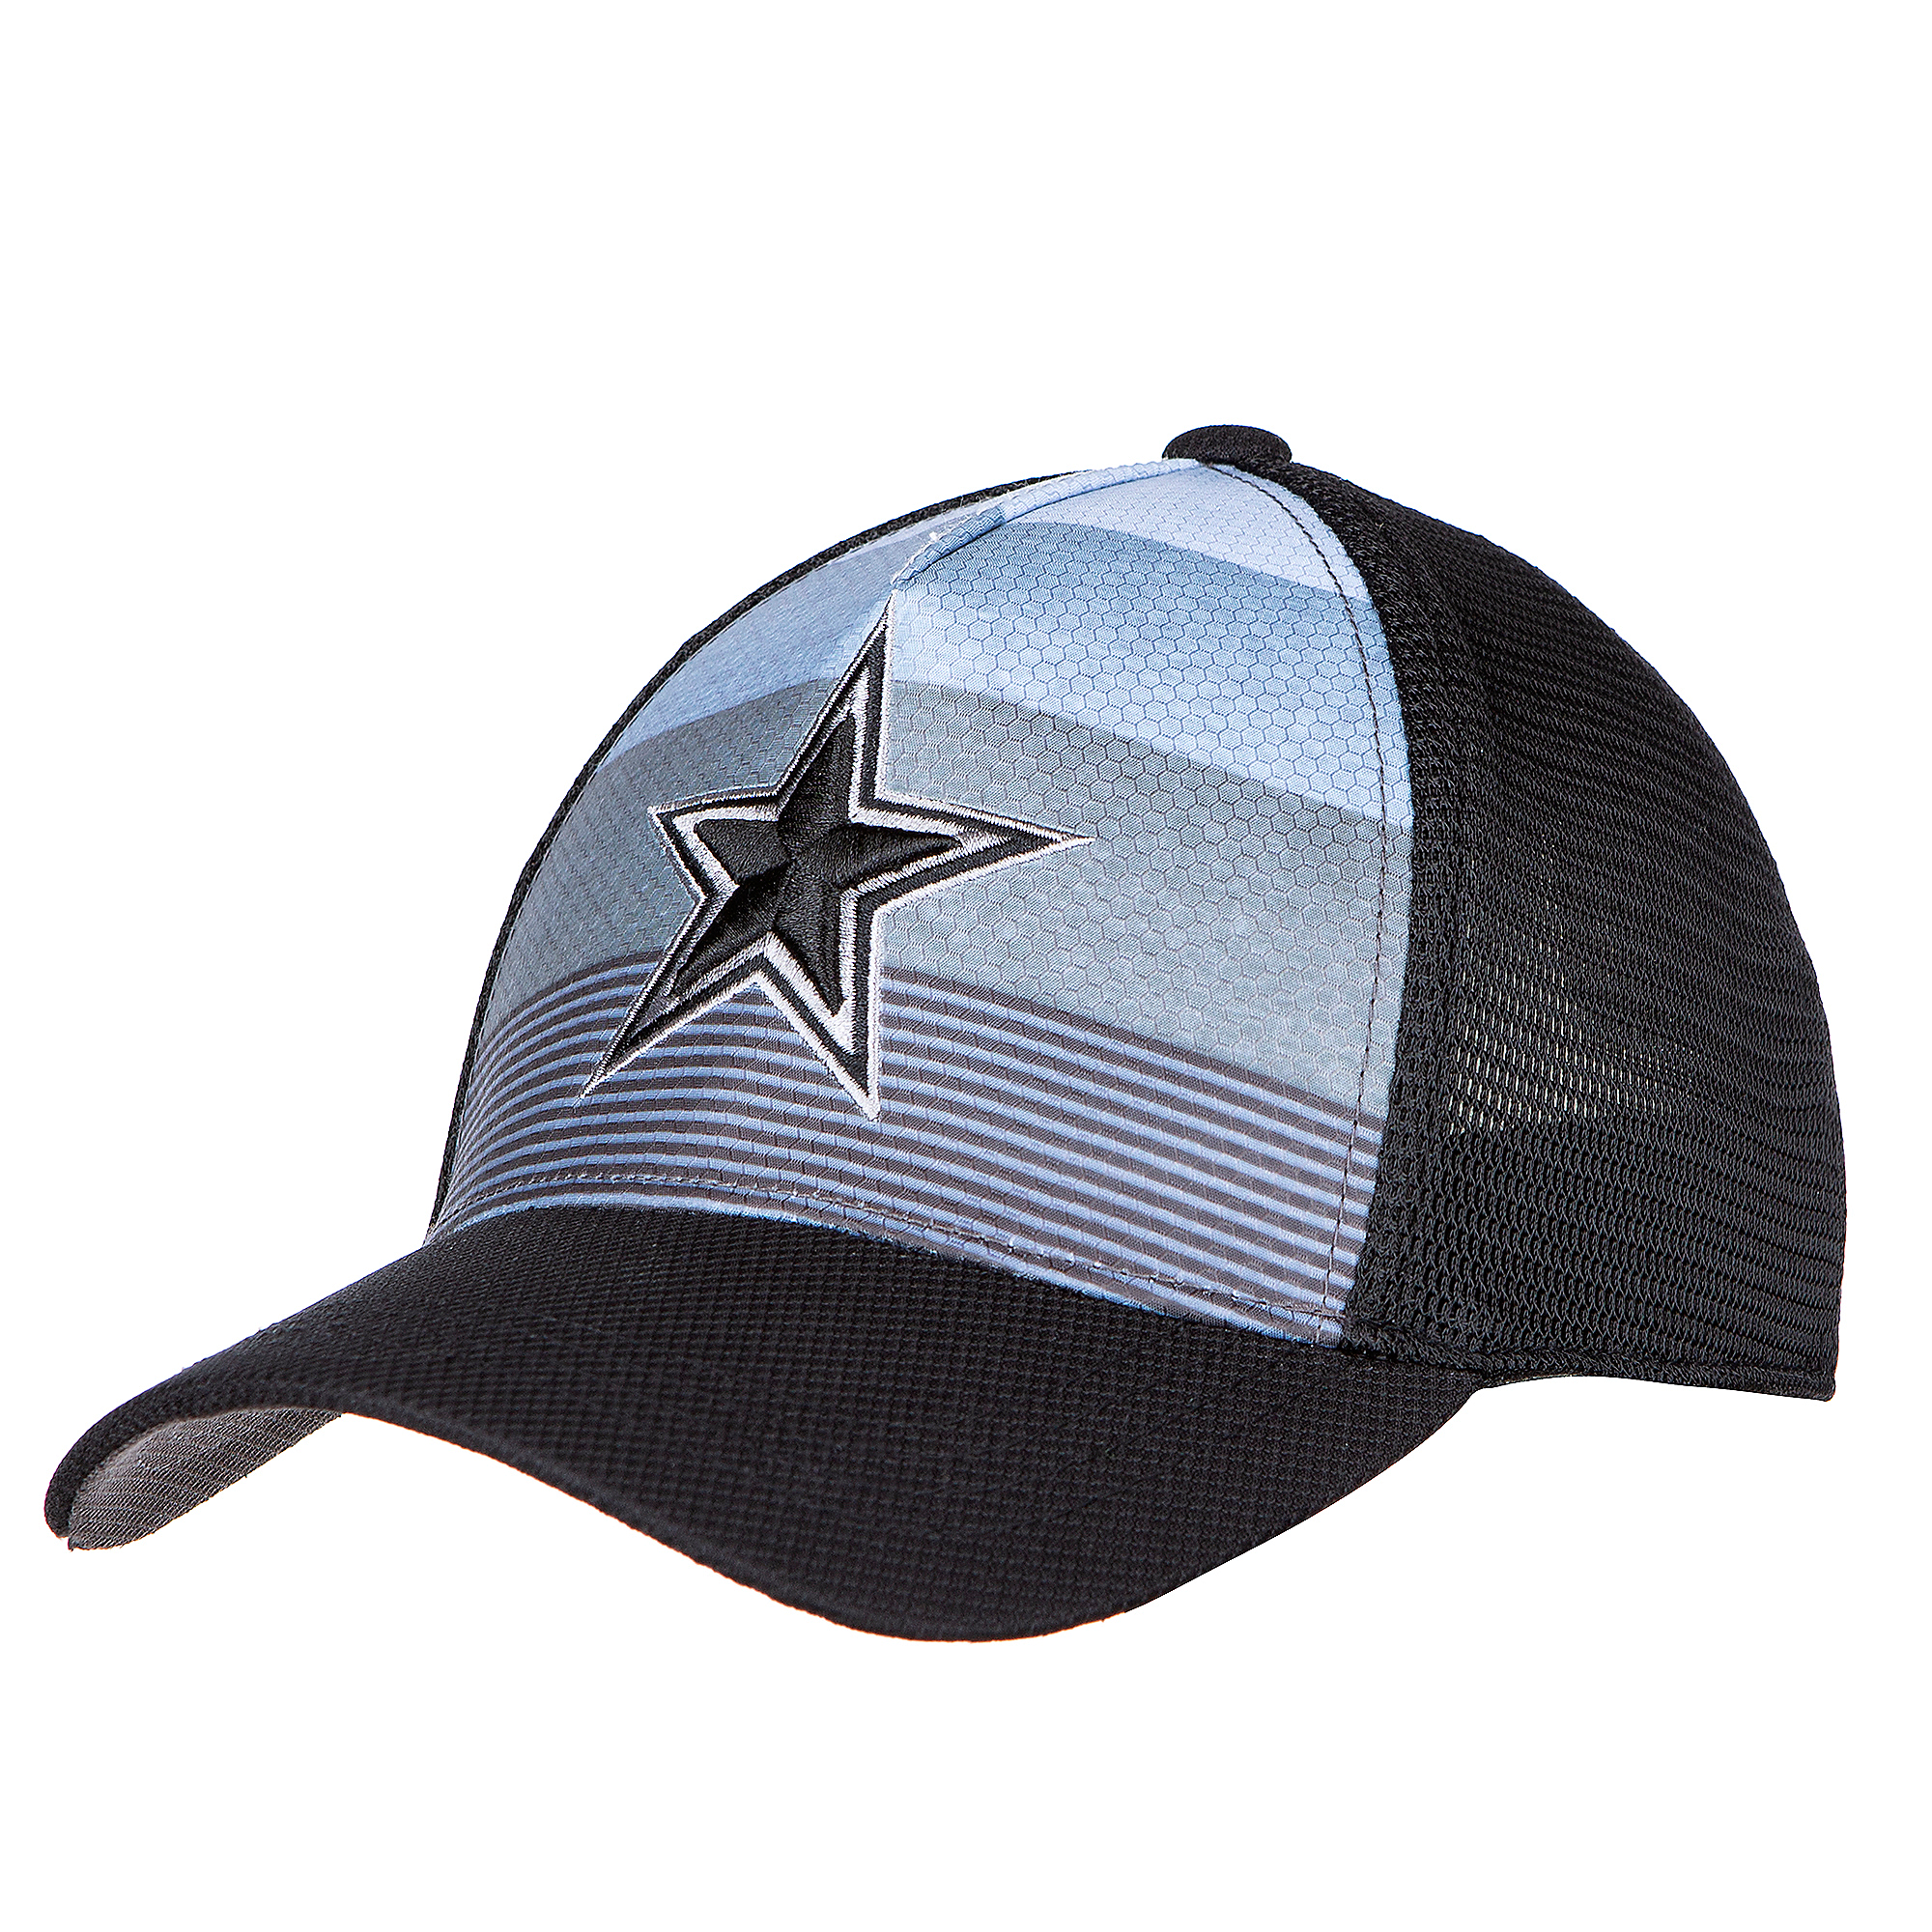 Dallas Cowboys Youth Blacktooth Flex Fit Cap